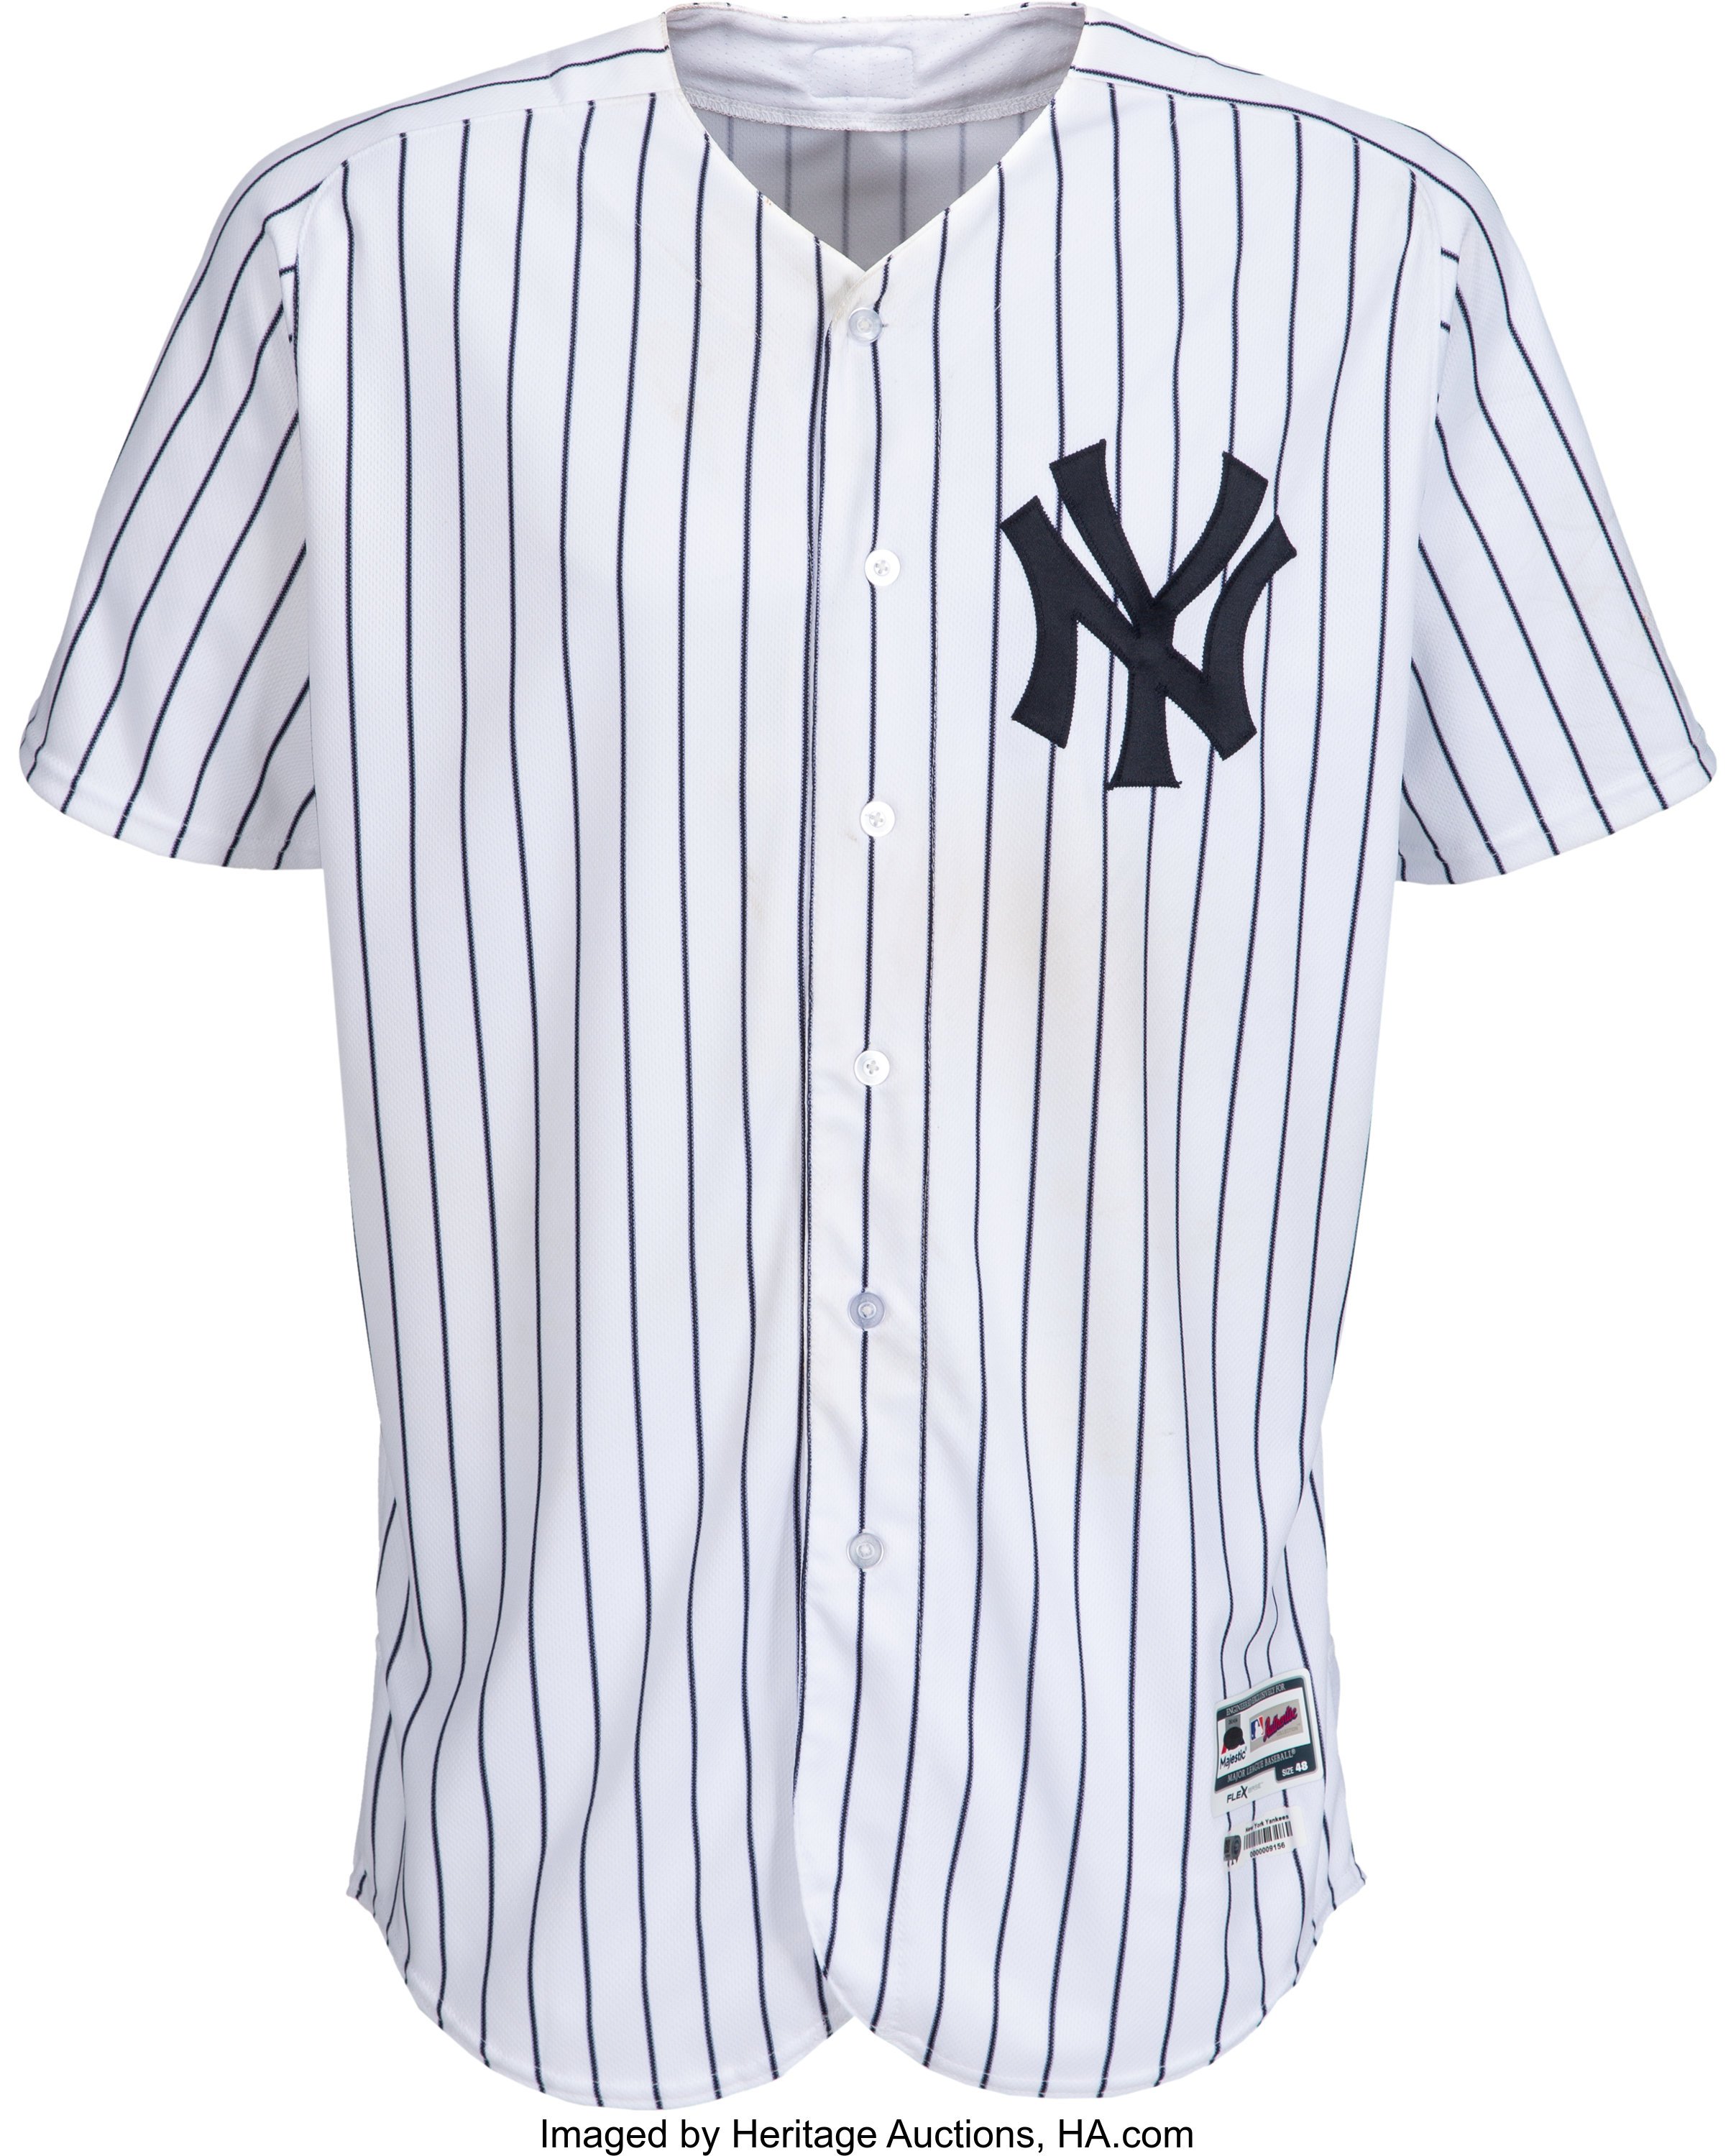 on sale 4feab 58918 2018 Luis Severino Game Worn & Unwashed New York Yankees ...